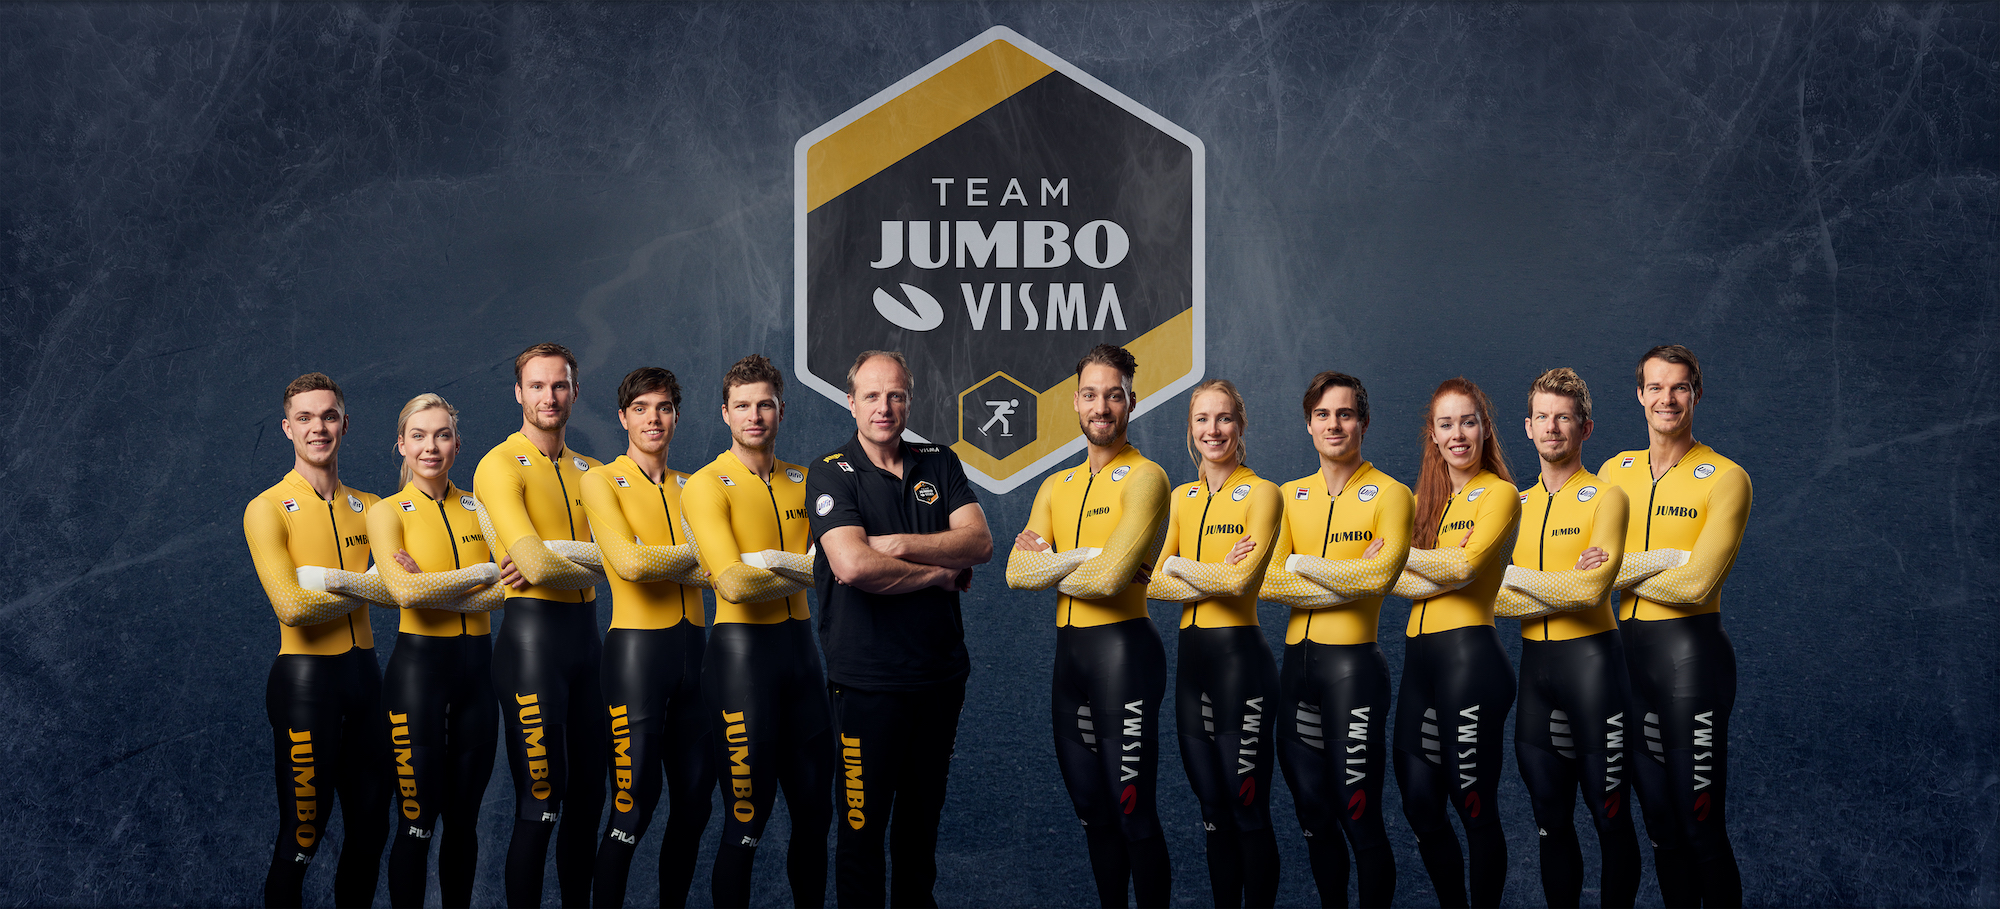 Group photo of the Jumbo-Visma ice skating team in 2019